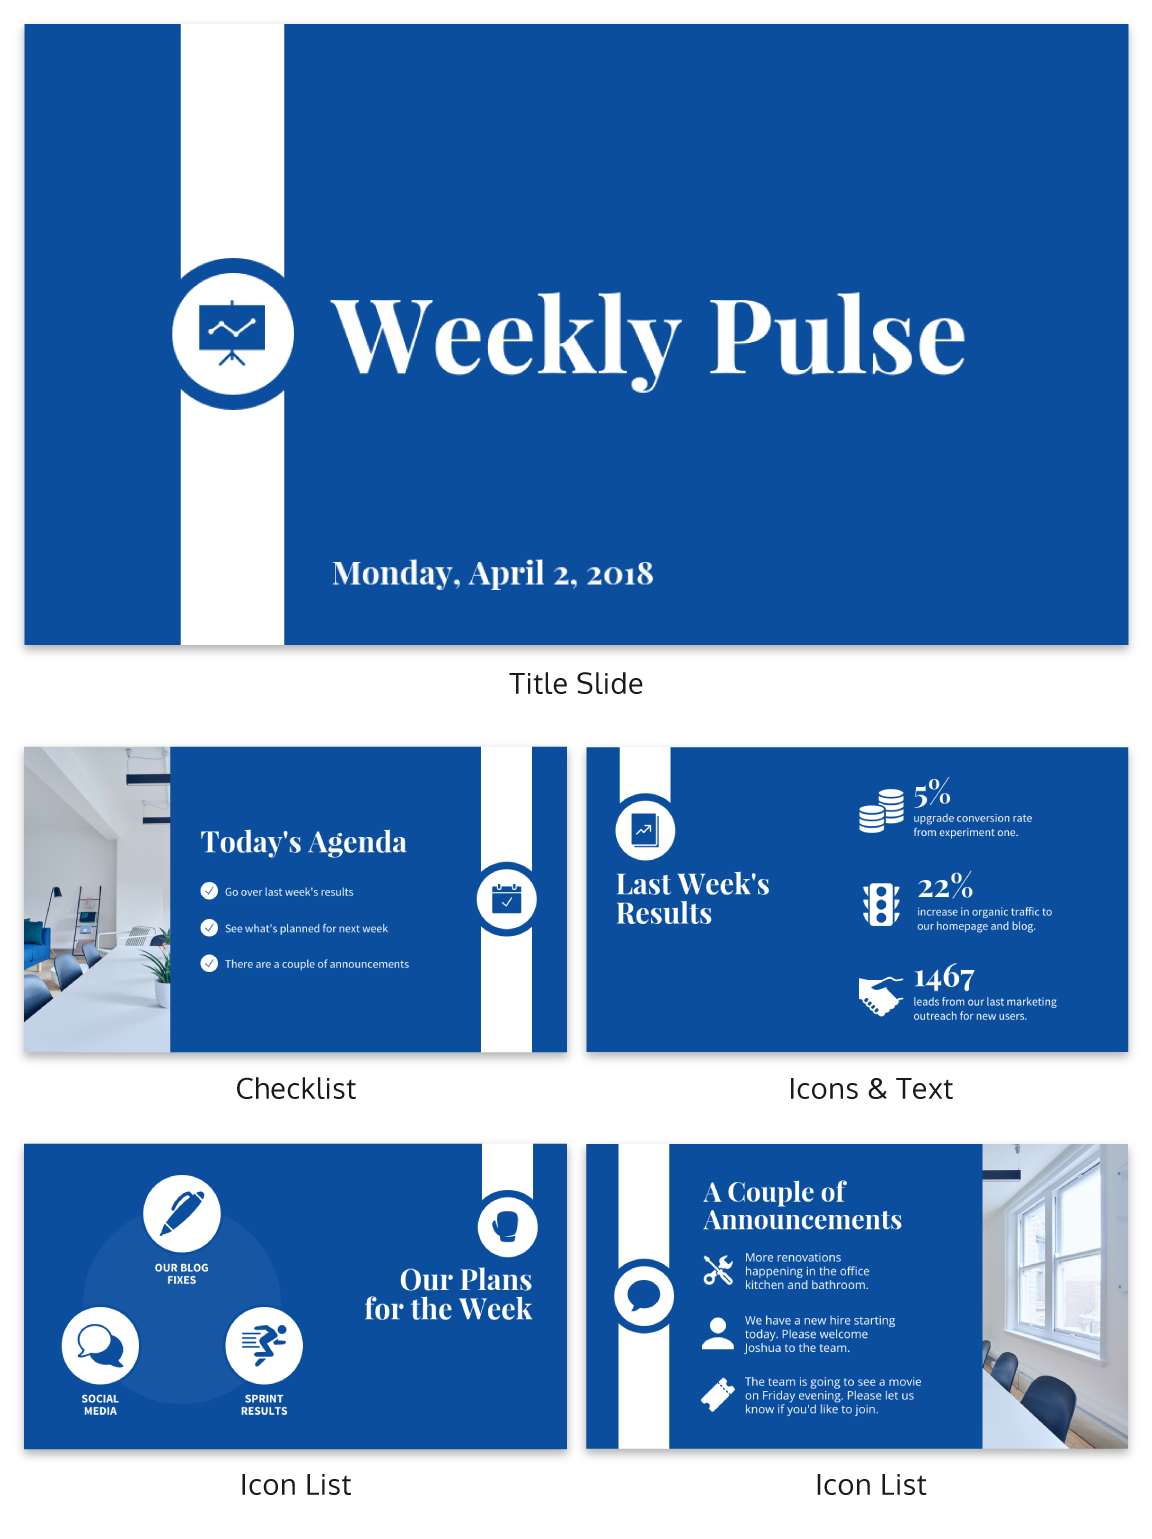 corporate pulse weekly update business presentation template venngage